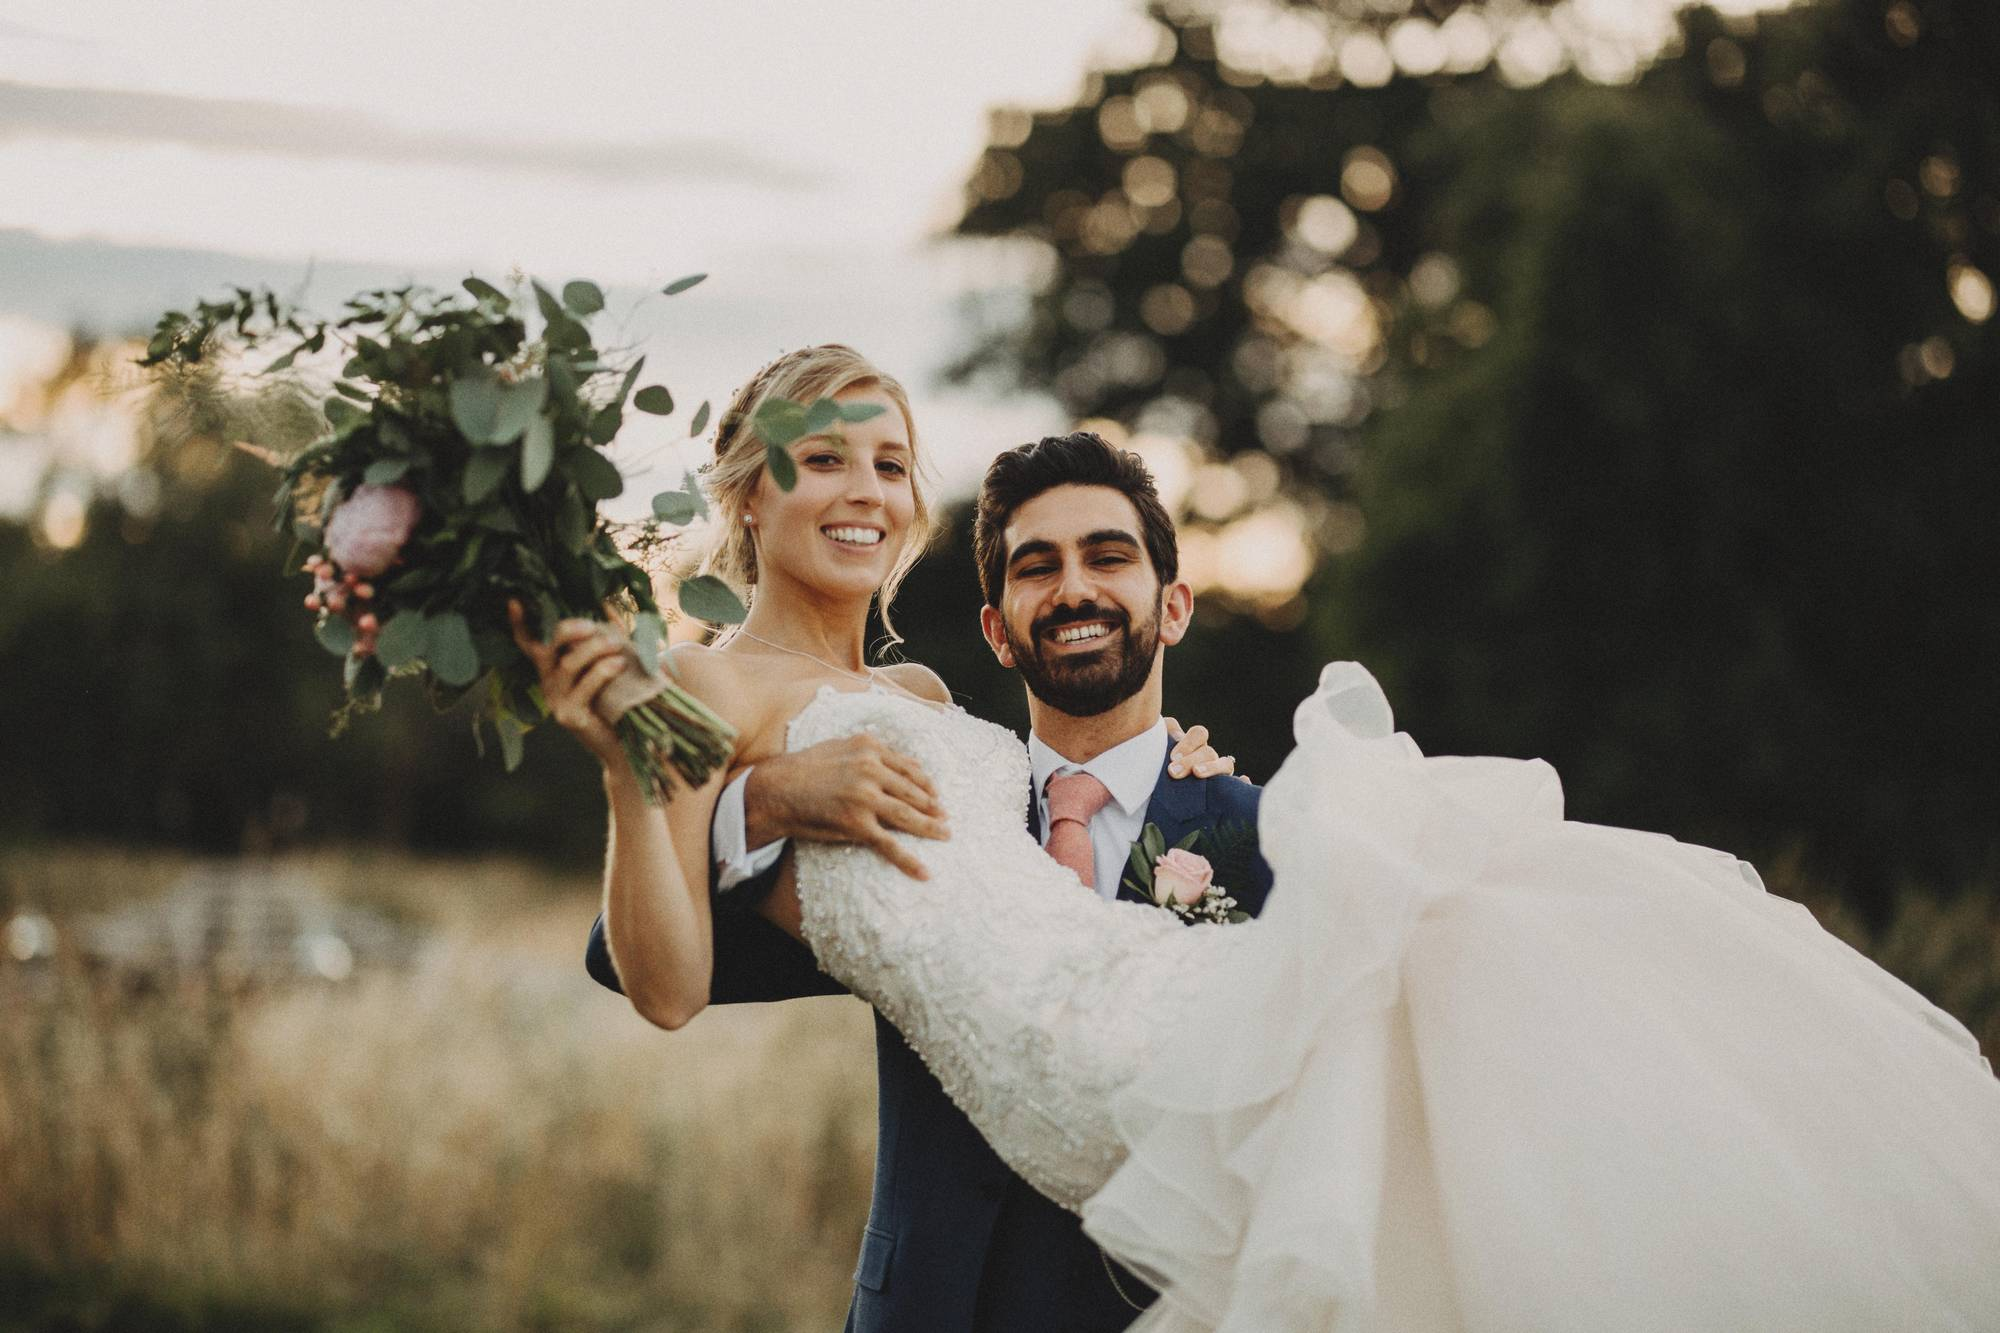 Groom carries bride in arms at elmore court wedding